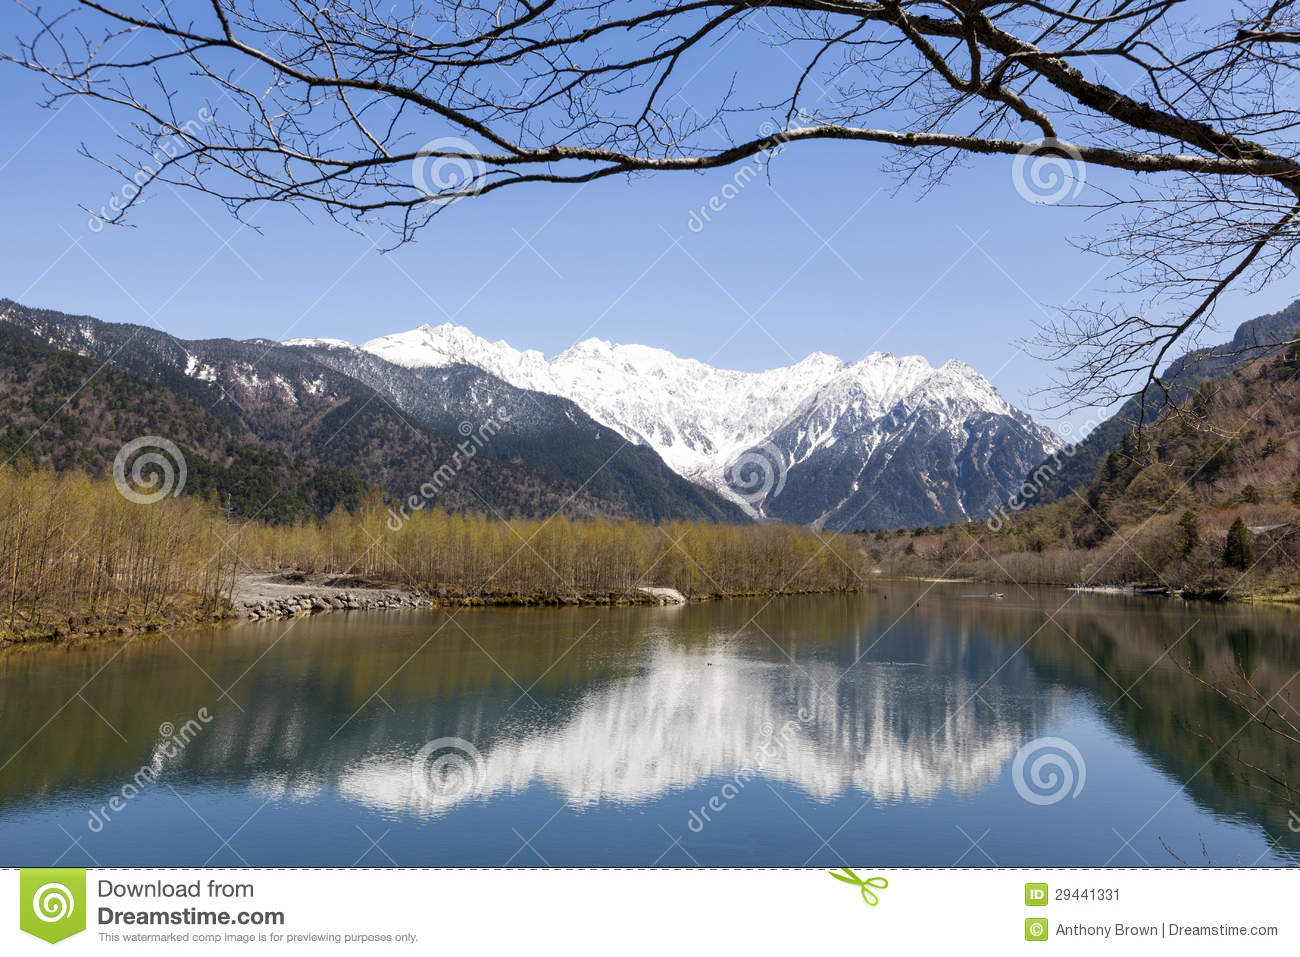 Snow Capped Hotaka Mountain Range Reflected In Taisho Pond In The